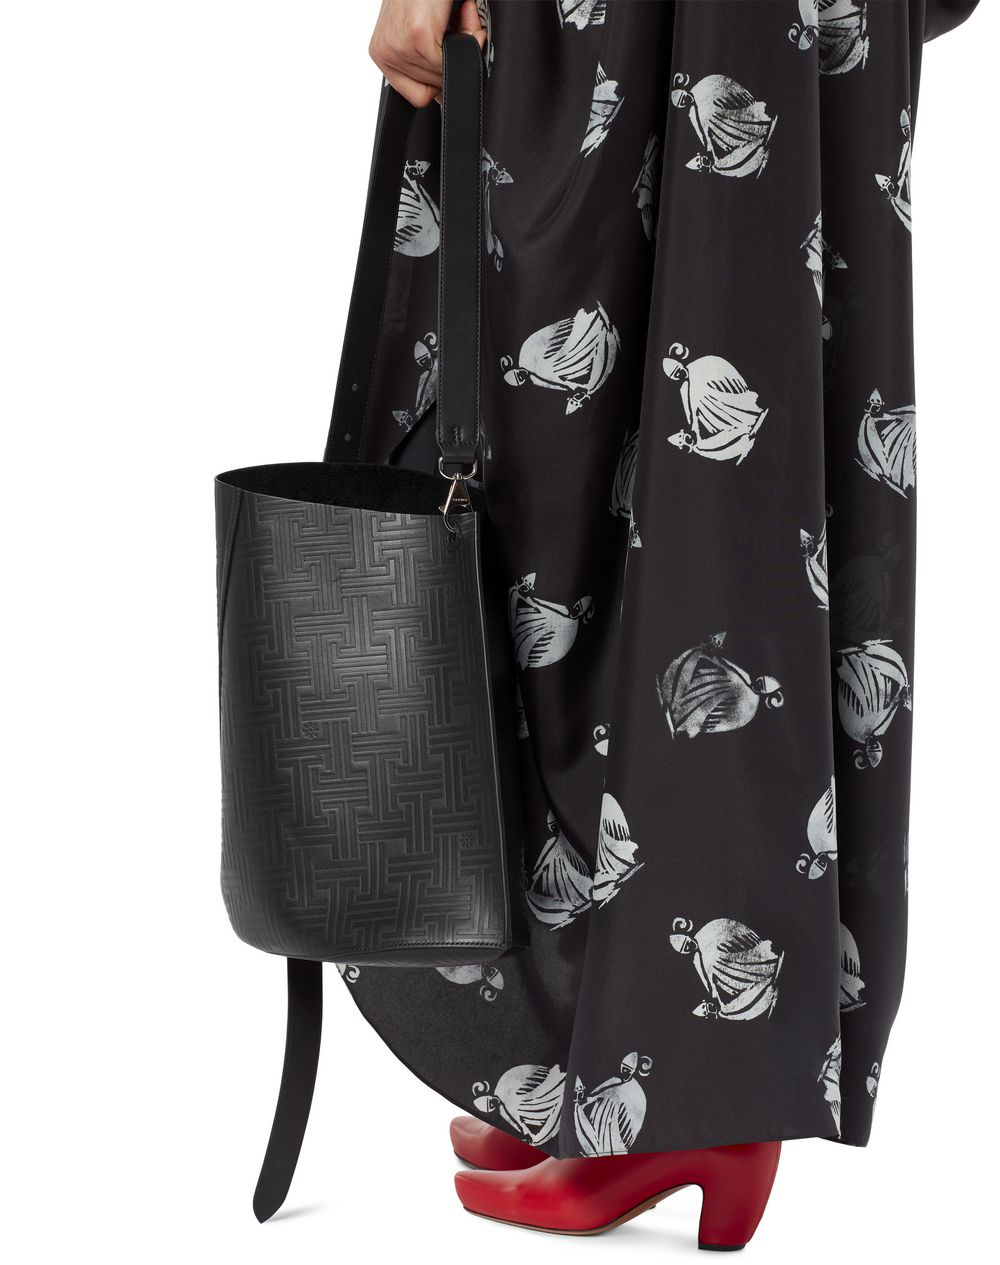 LARGE HOOK BAG WITH JL MOTIFS - Lanvin